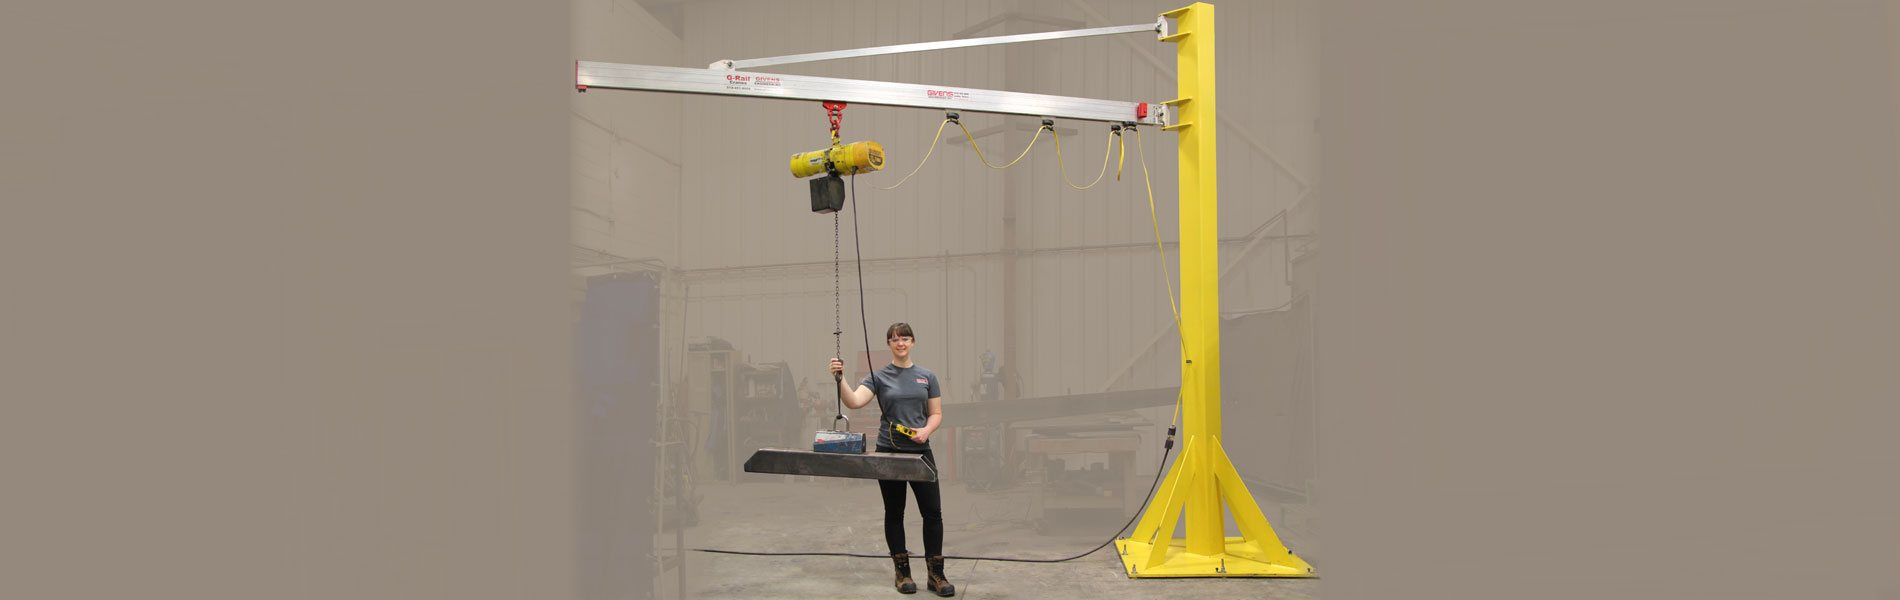 Custom Jib Cranes manufactured in the US by Givens Lifting Systems Inc.